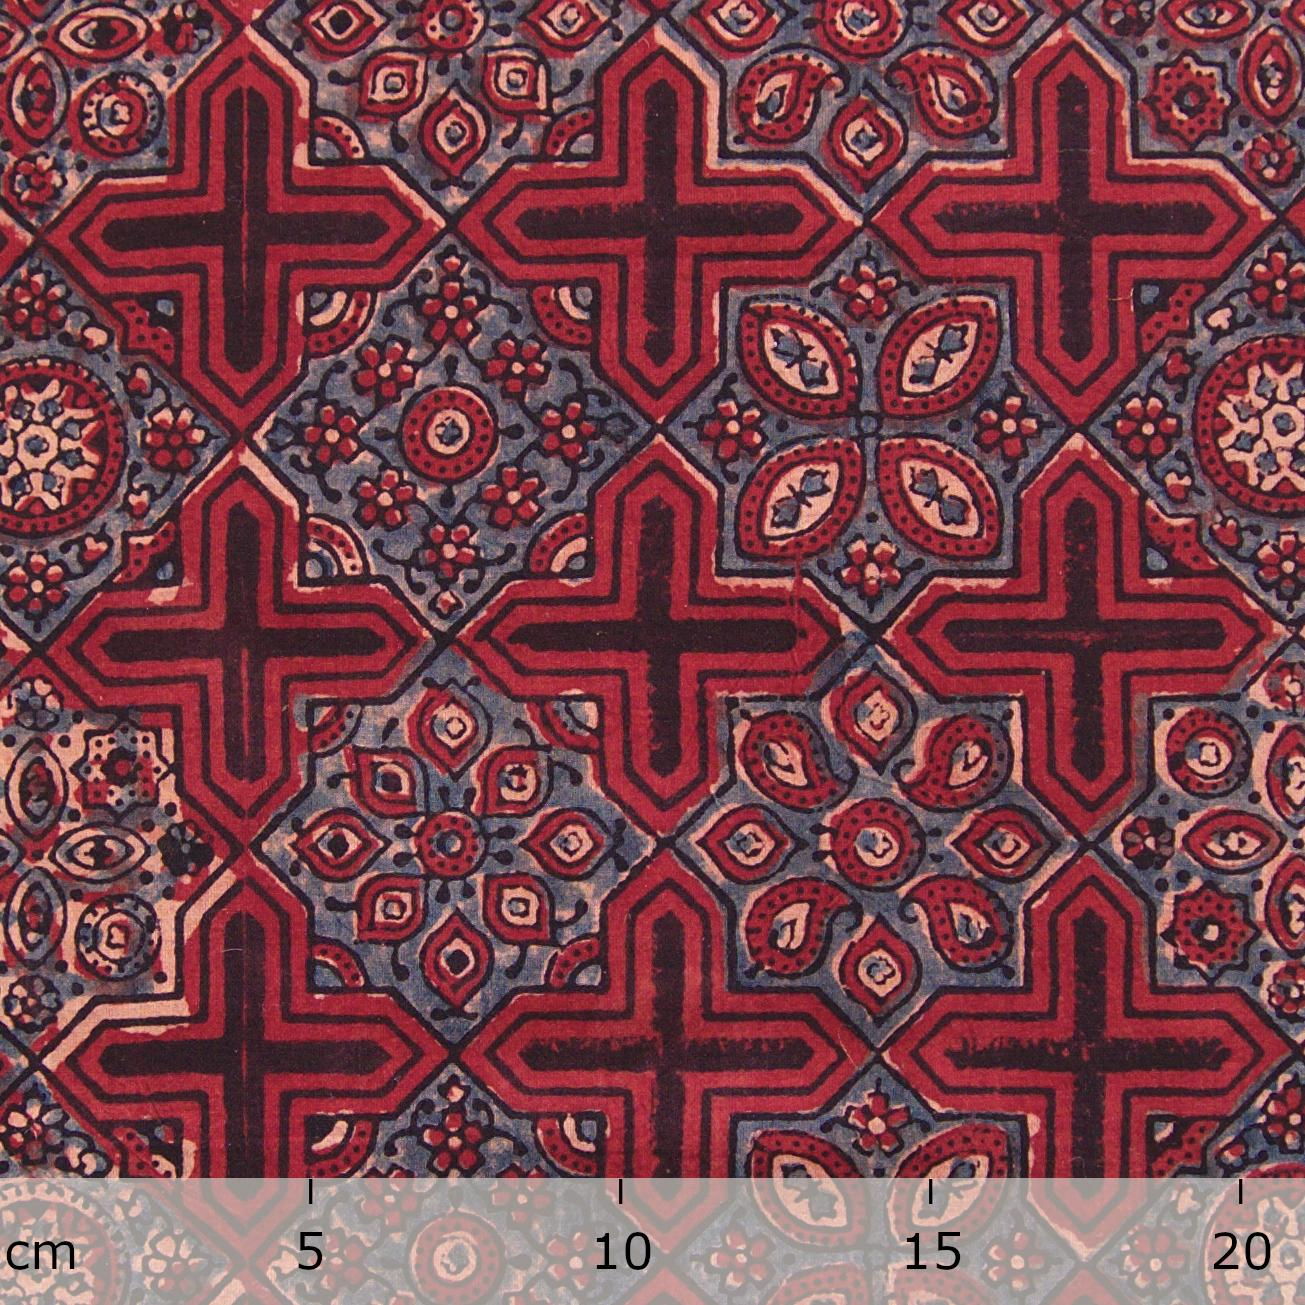 Block Printed Fabric, 100% Cotton, Ajrak Design: Red Base, Black Cross, Blue Design. Ruler